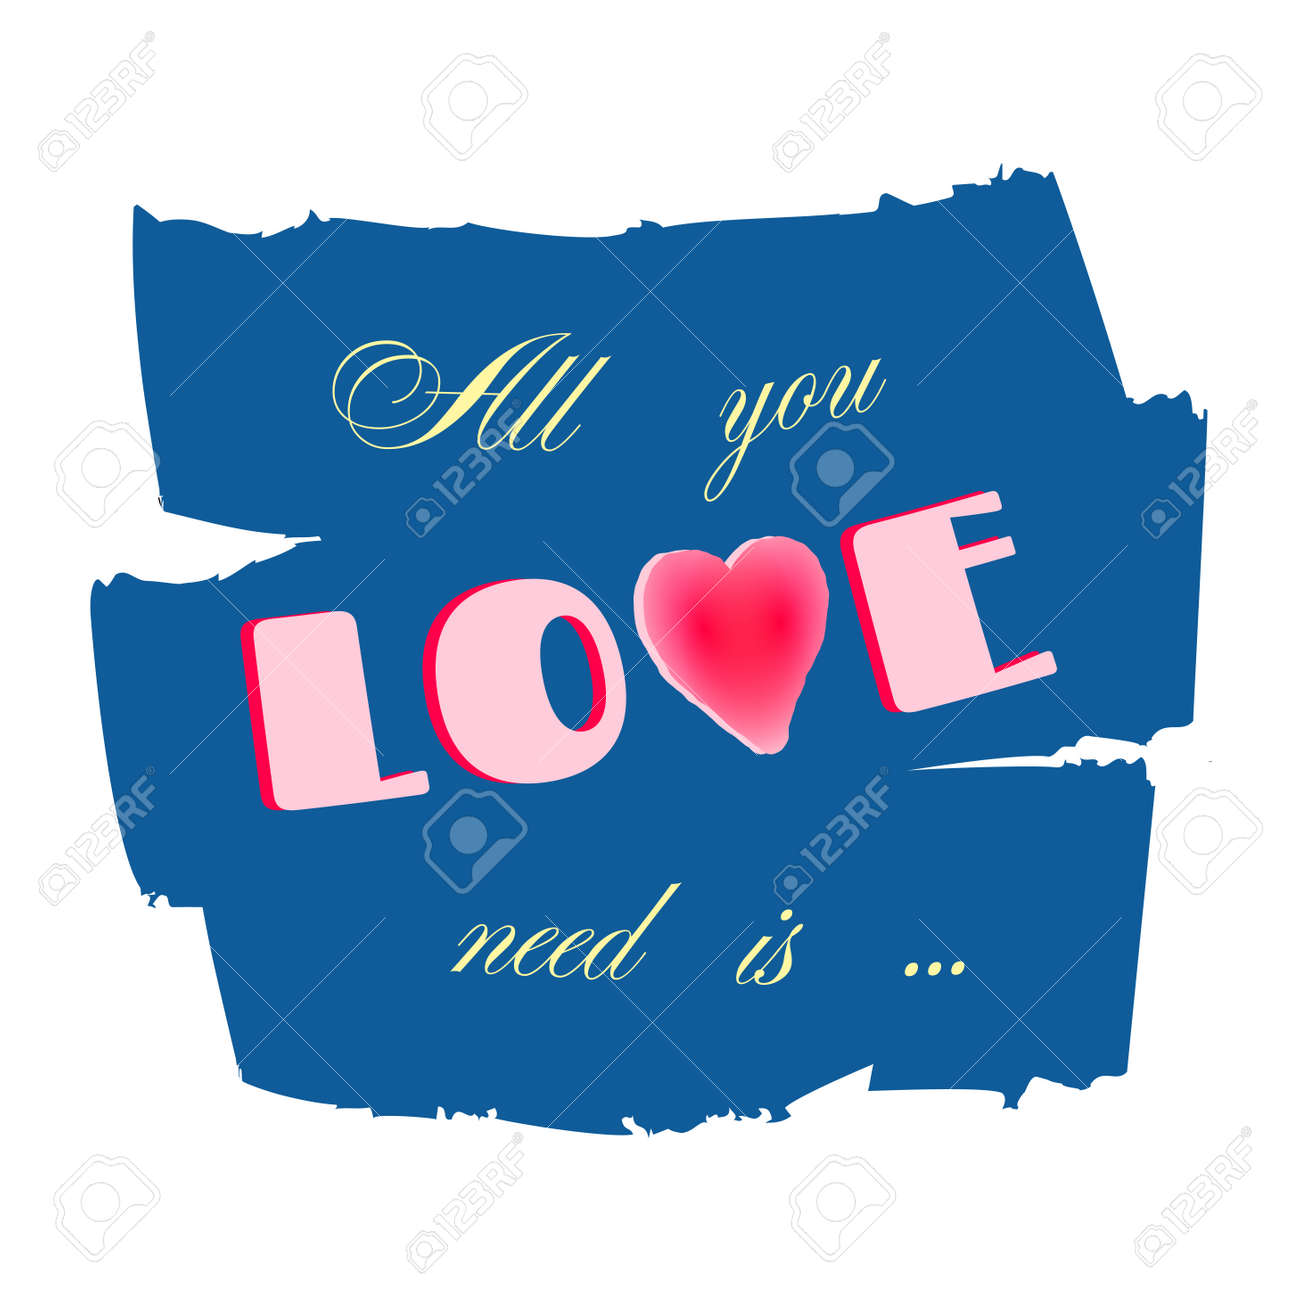 All You Need Is Love. Romance Retro Quote Text With Heart. Typography  Background.